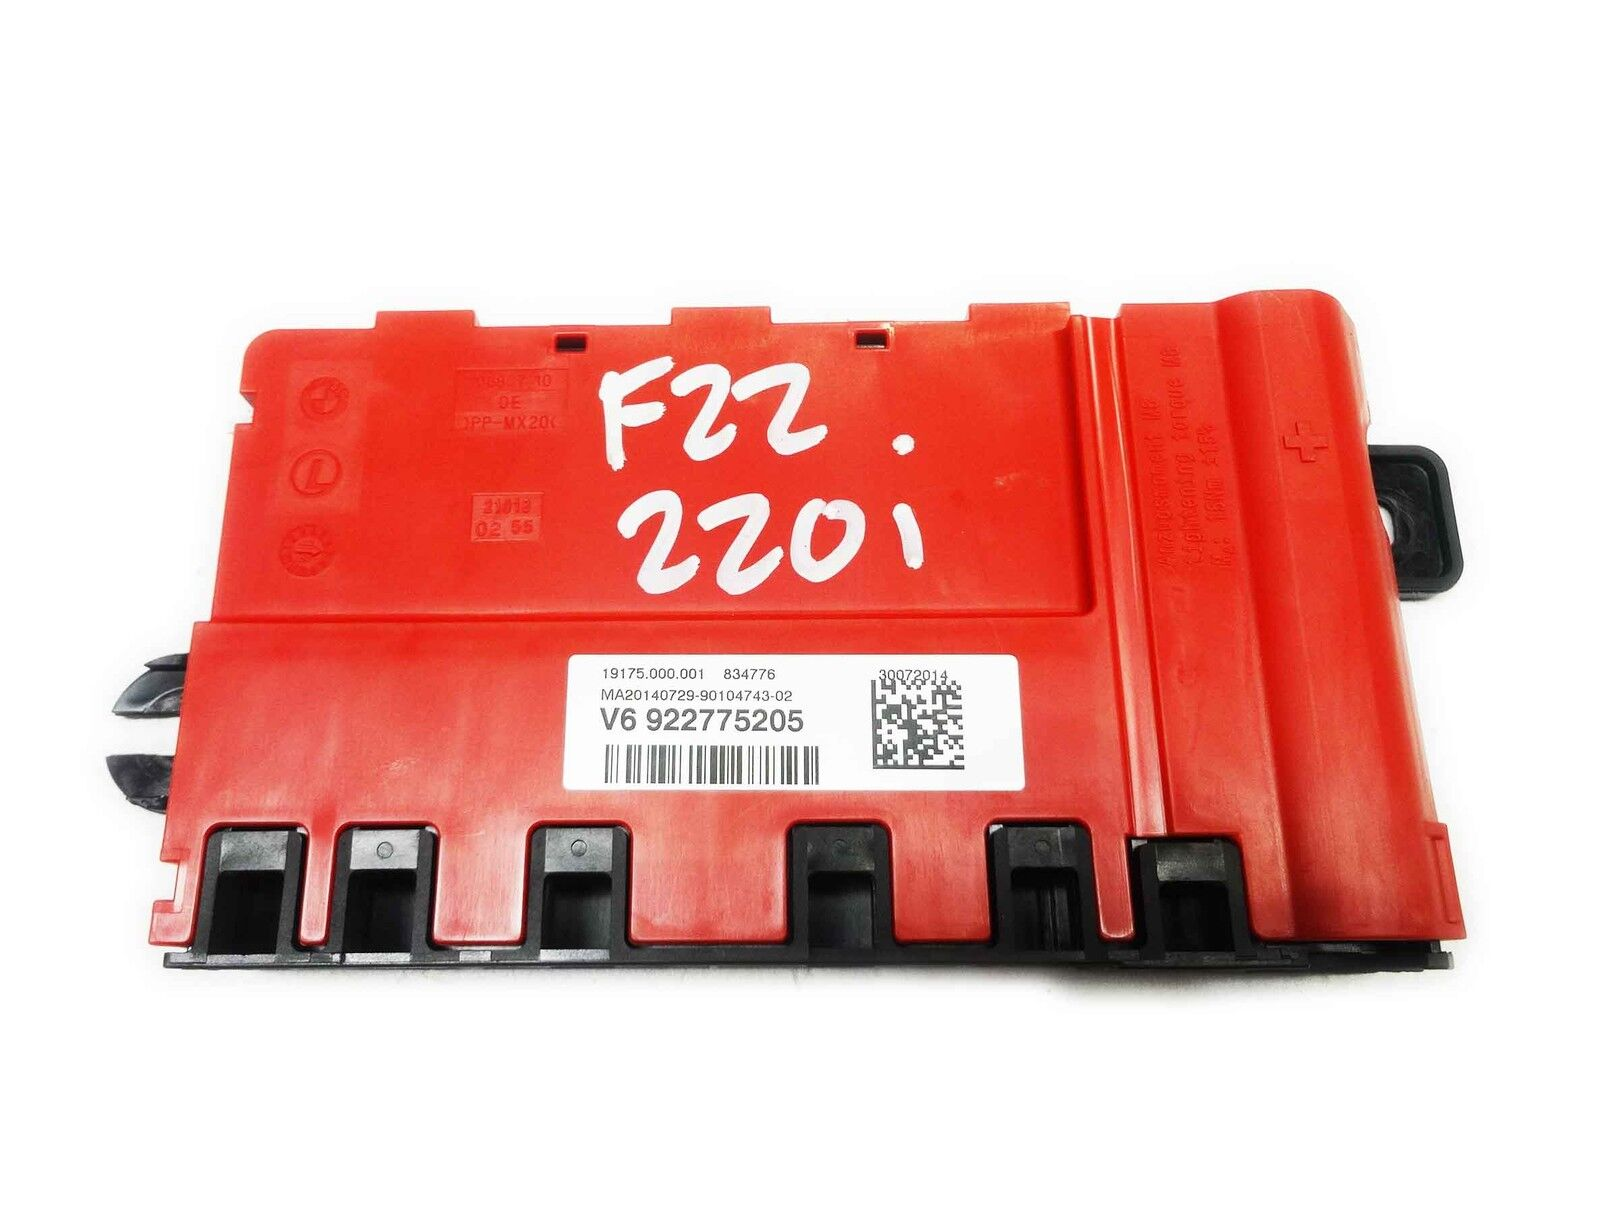 Bmw 2 Series F22 F20 Coupe 220i M3 Distributor B Multifuse Fuse Box 2010 61149227752 1 Of 2only 4 Available